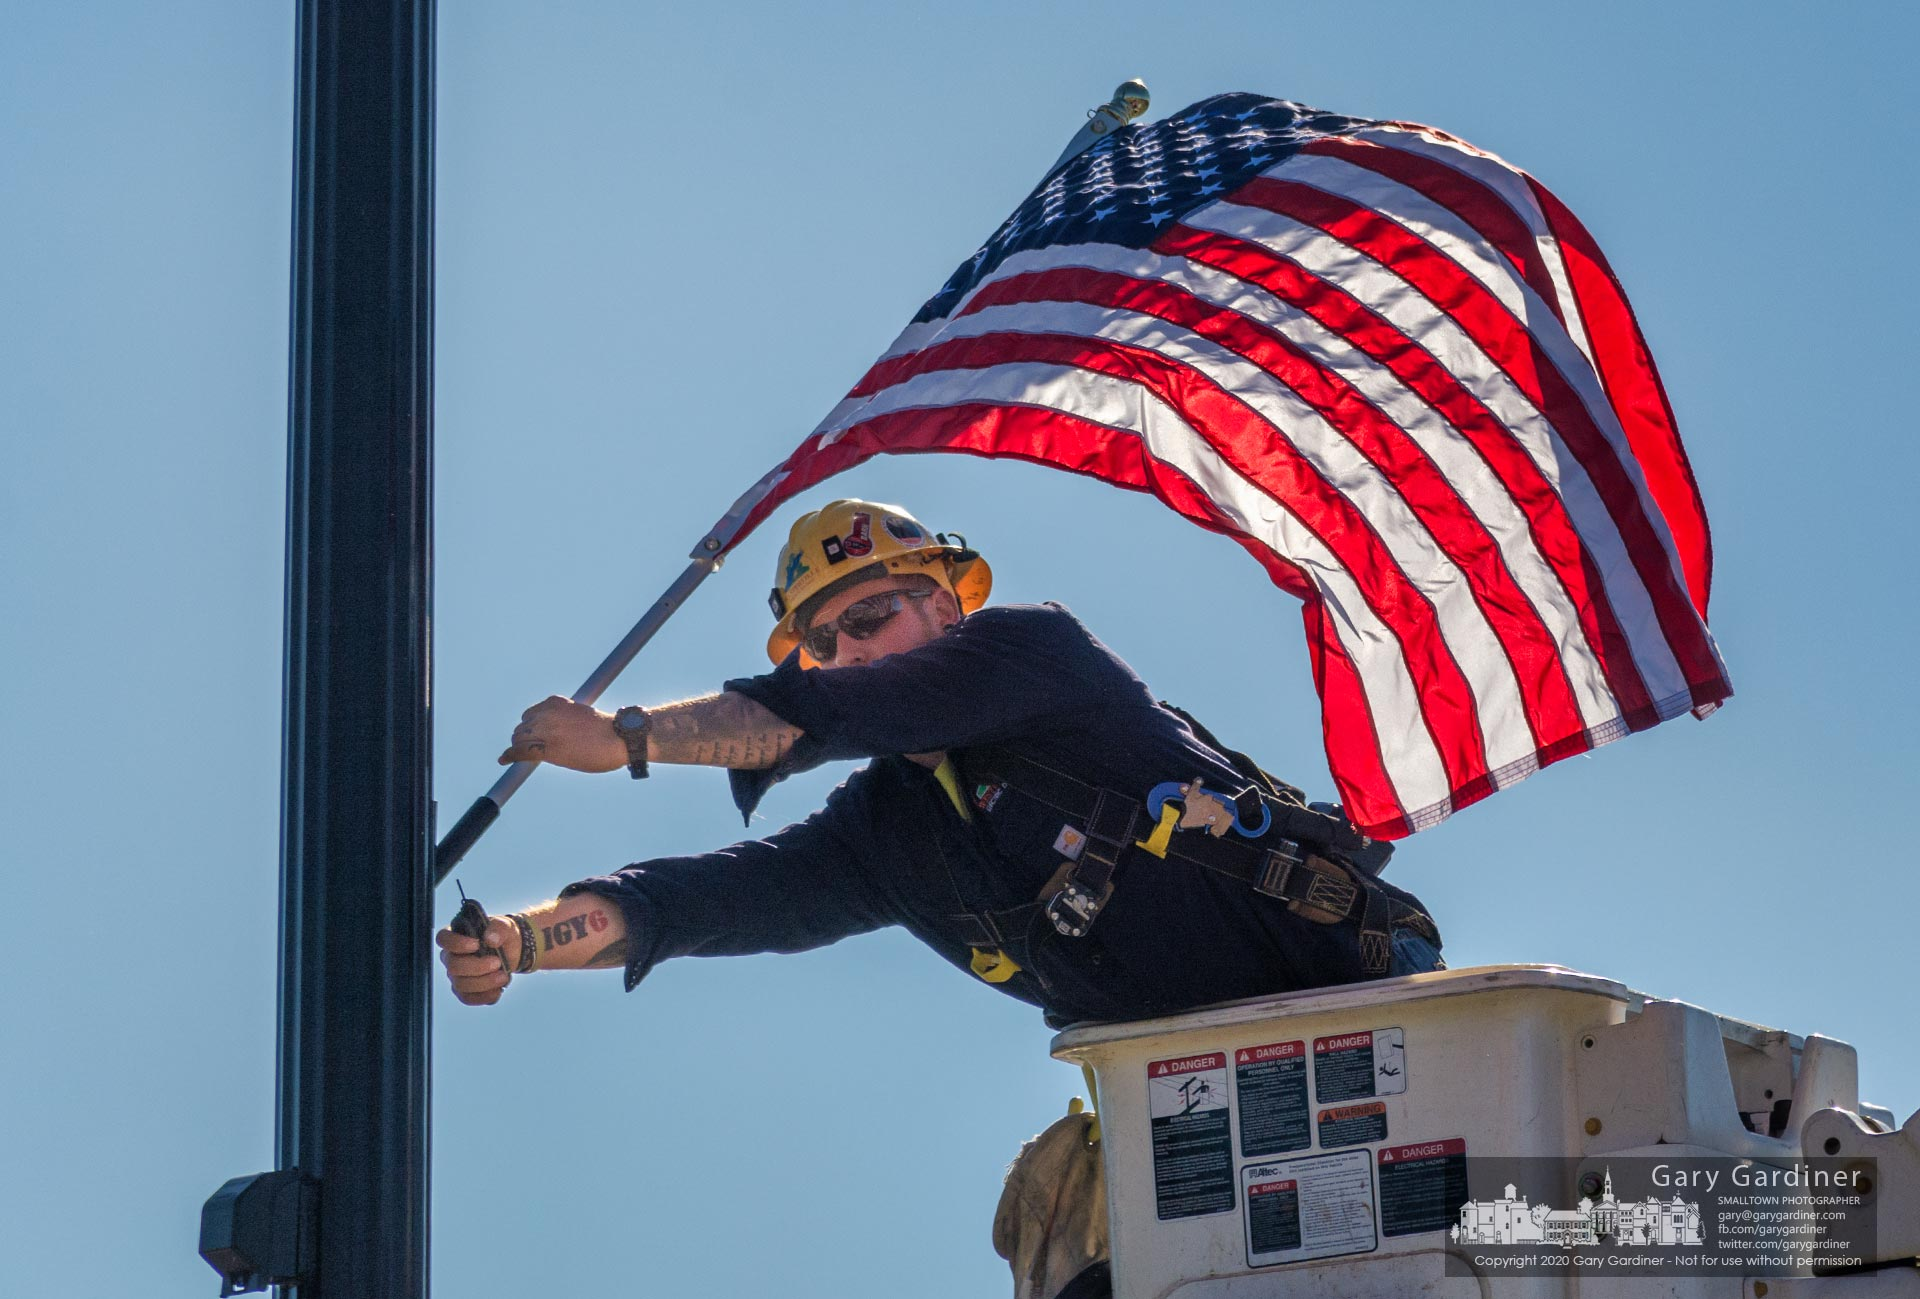 A city worker attaches an American flag to a utility pole on South State in anticipation of Veterans Day Nov. 11, 2020. My Final Photo for Nov. 4, 2020.